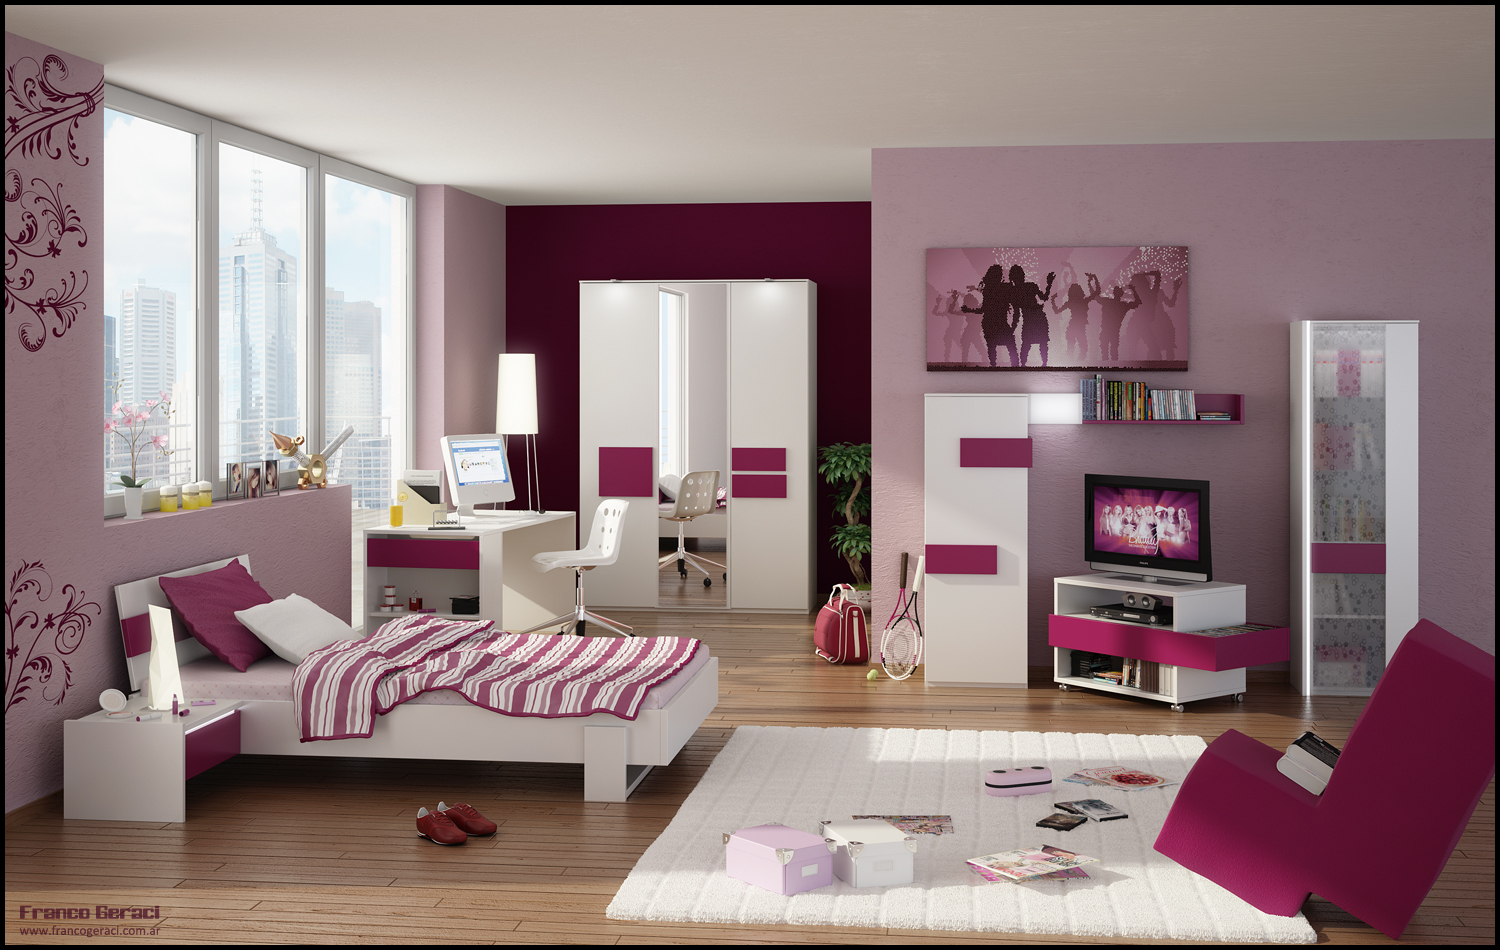 Impressive Teenage Girls Room Design Ideas 1500 x 950 · 847 kB · jpeg